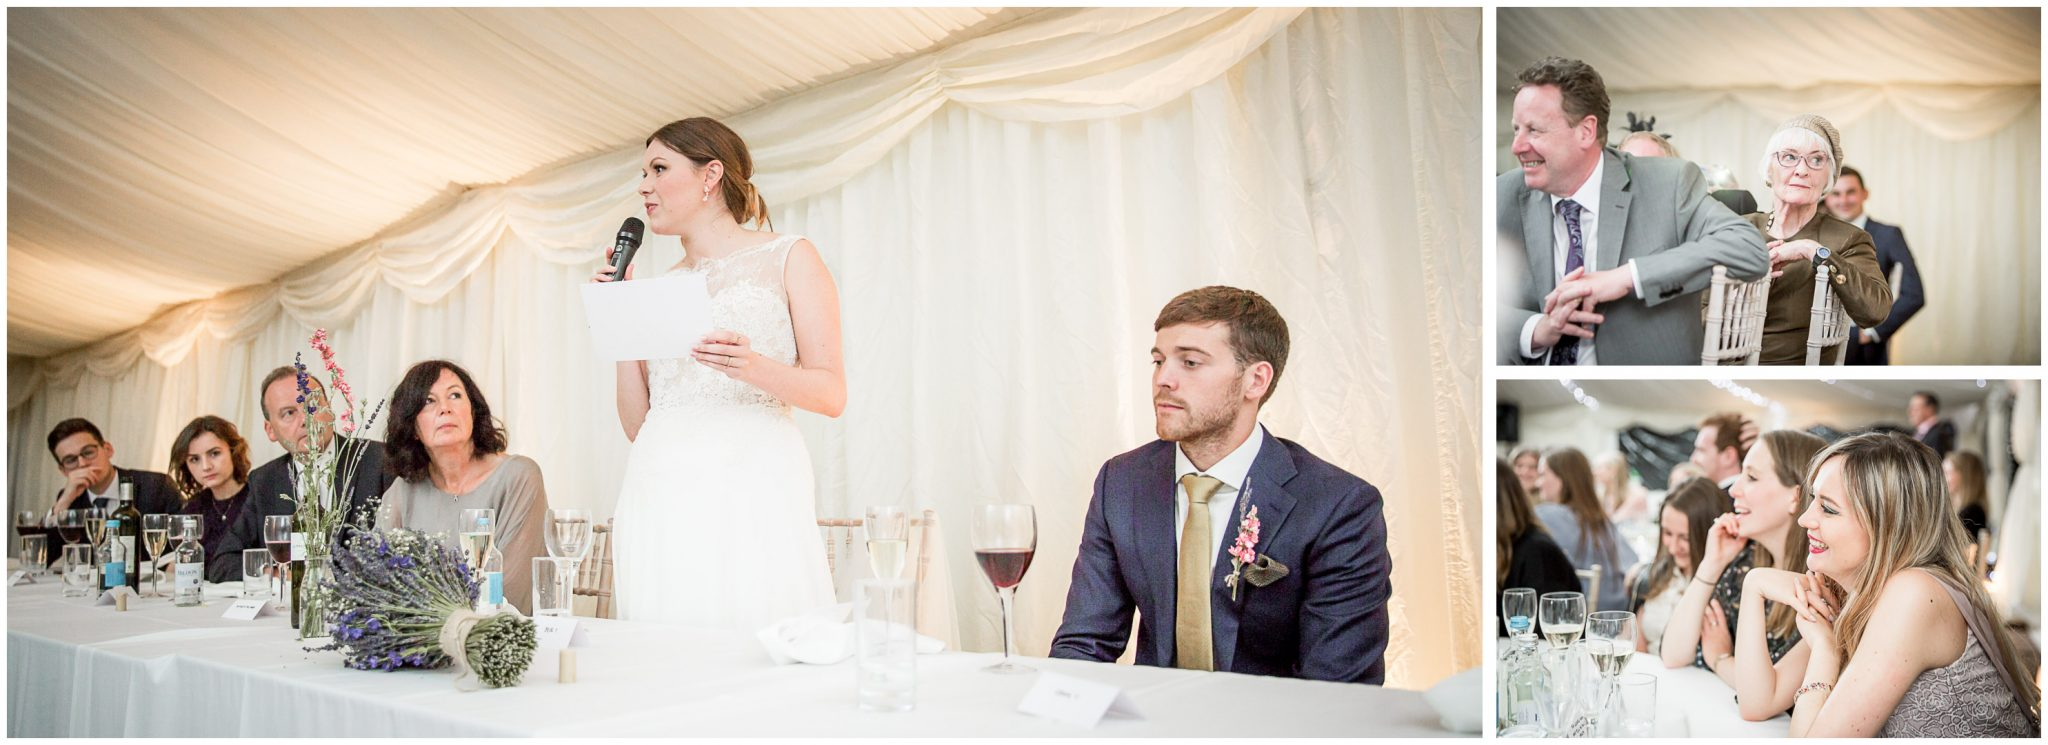 Old Alresford Place wedding photography bride gives speech